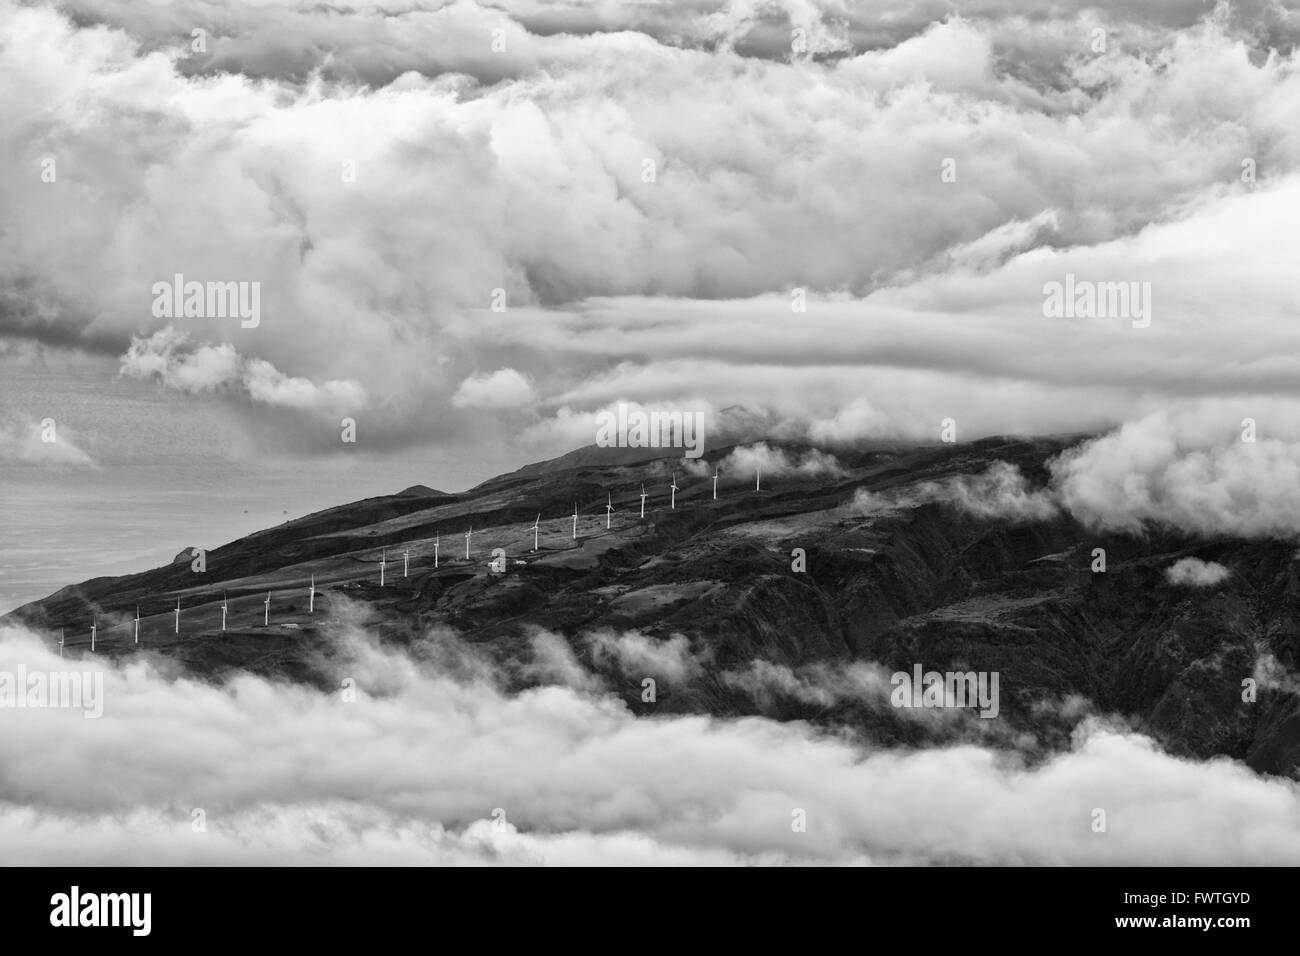 wind farm on West Maui Mountains seen from Haleakala Crater - Stock Image